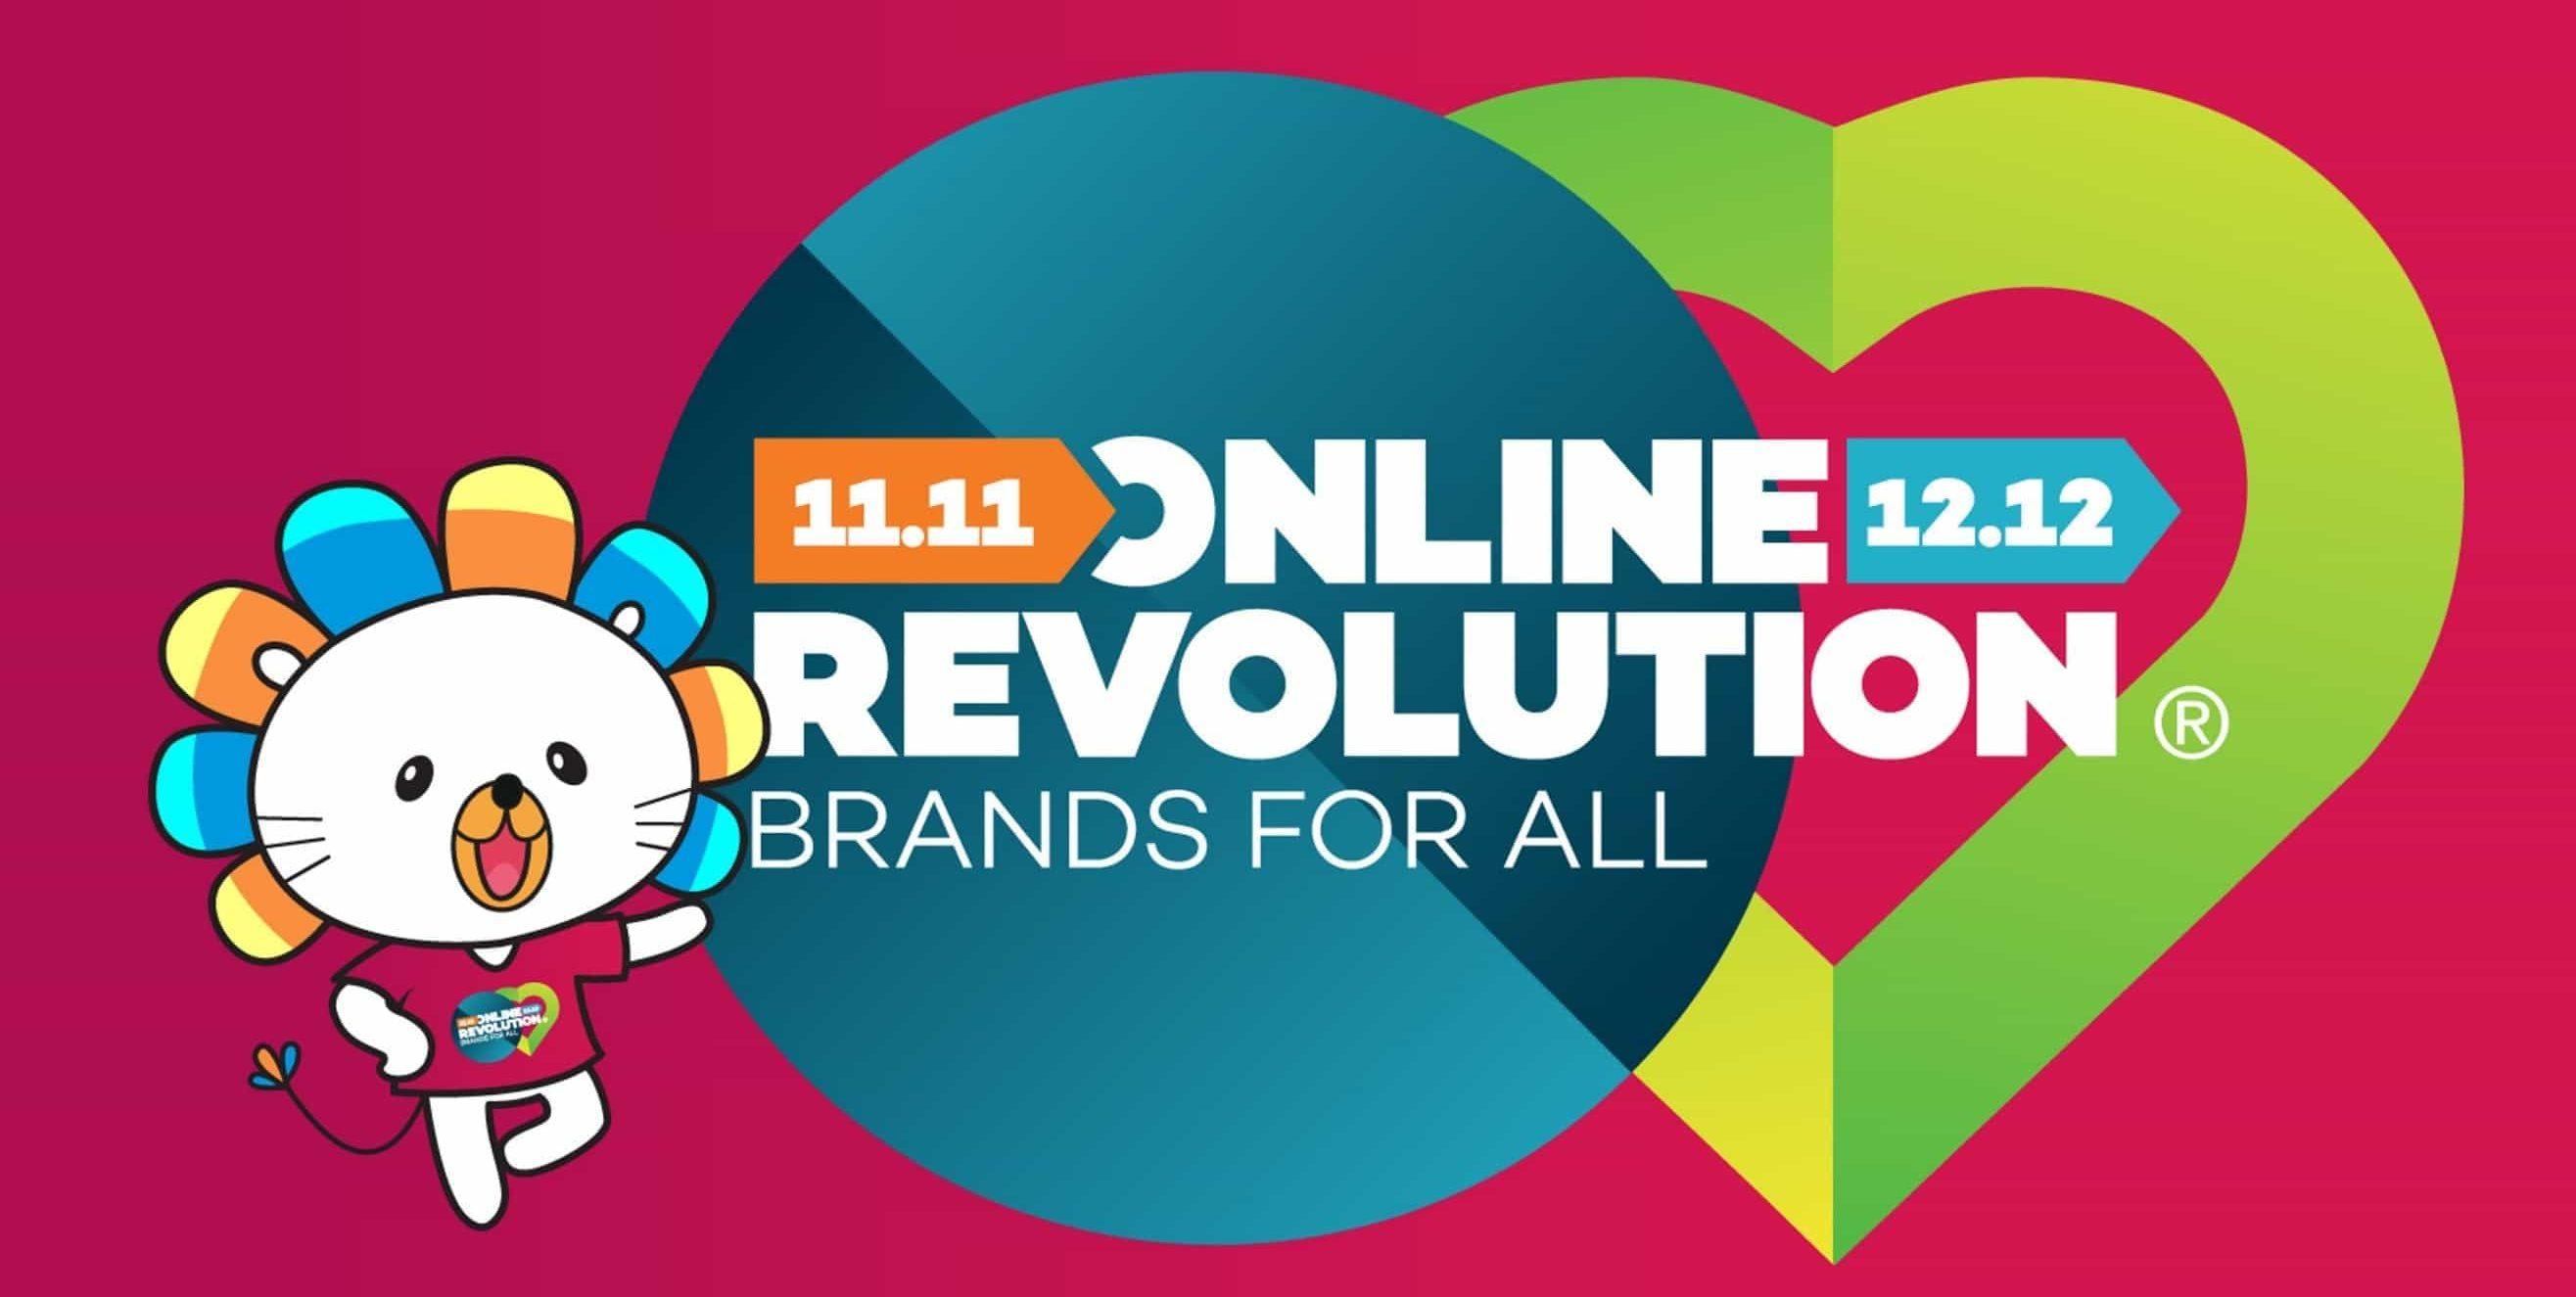 Lazada Online Revolution Single's Day 11.11 Sale